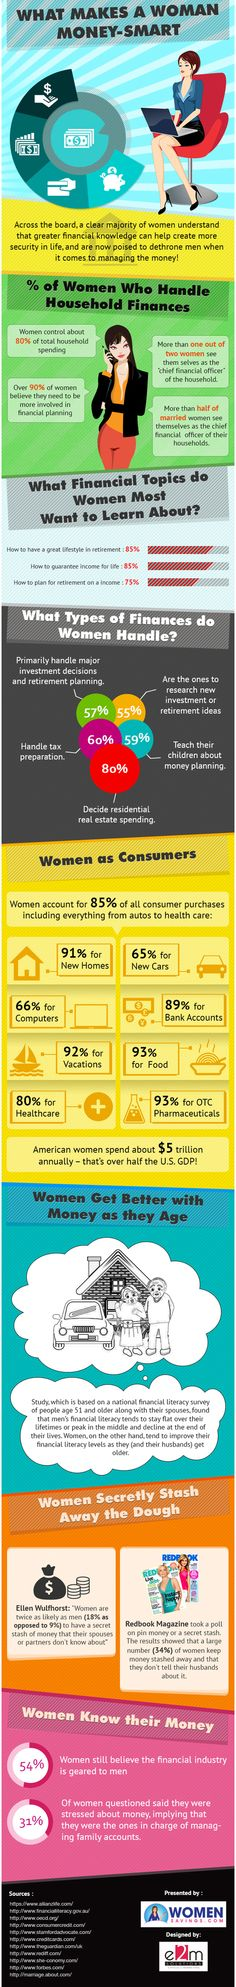 Infographic - What Makes a Woman Money Smart -